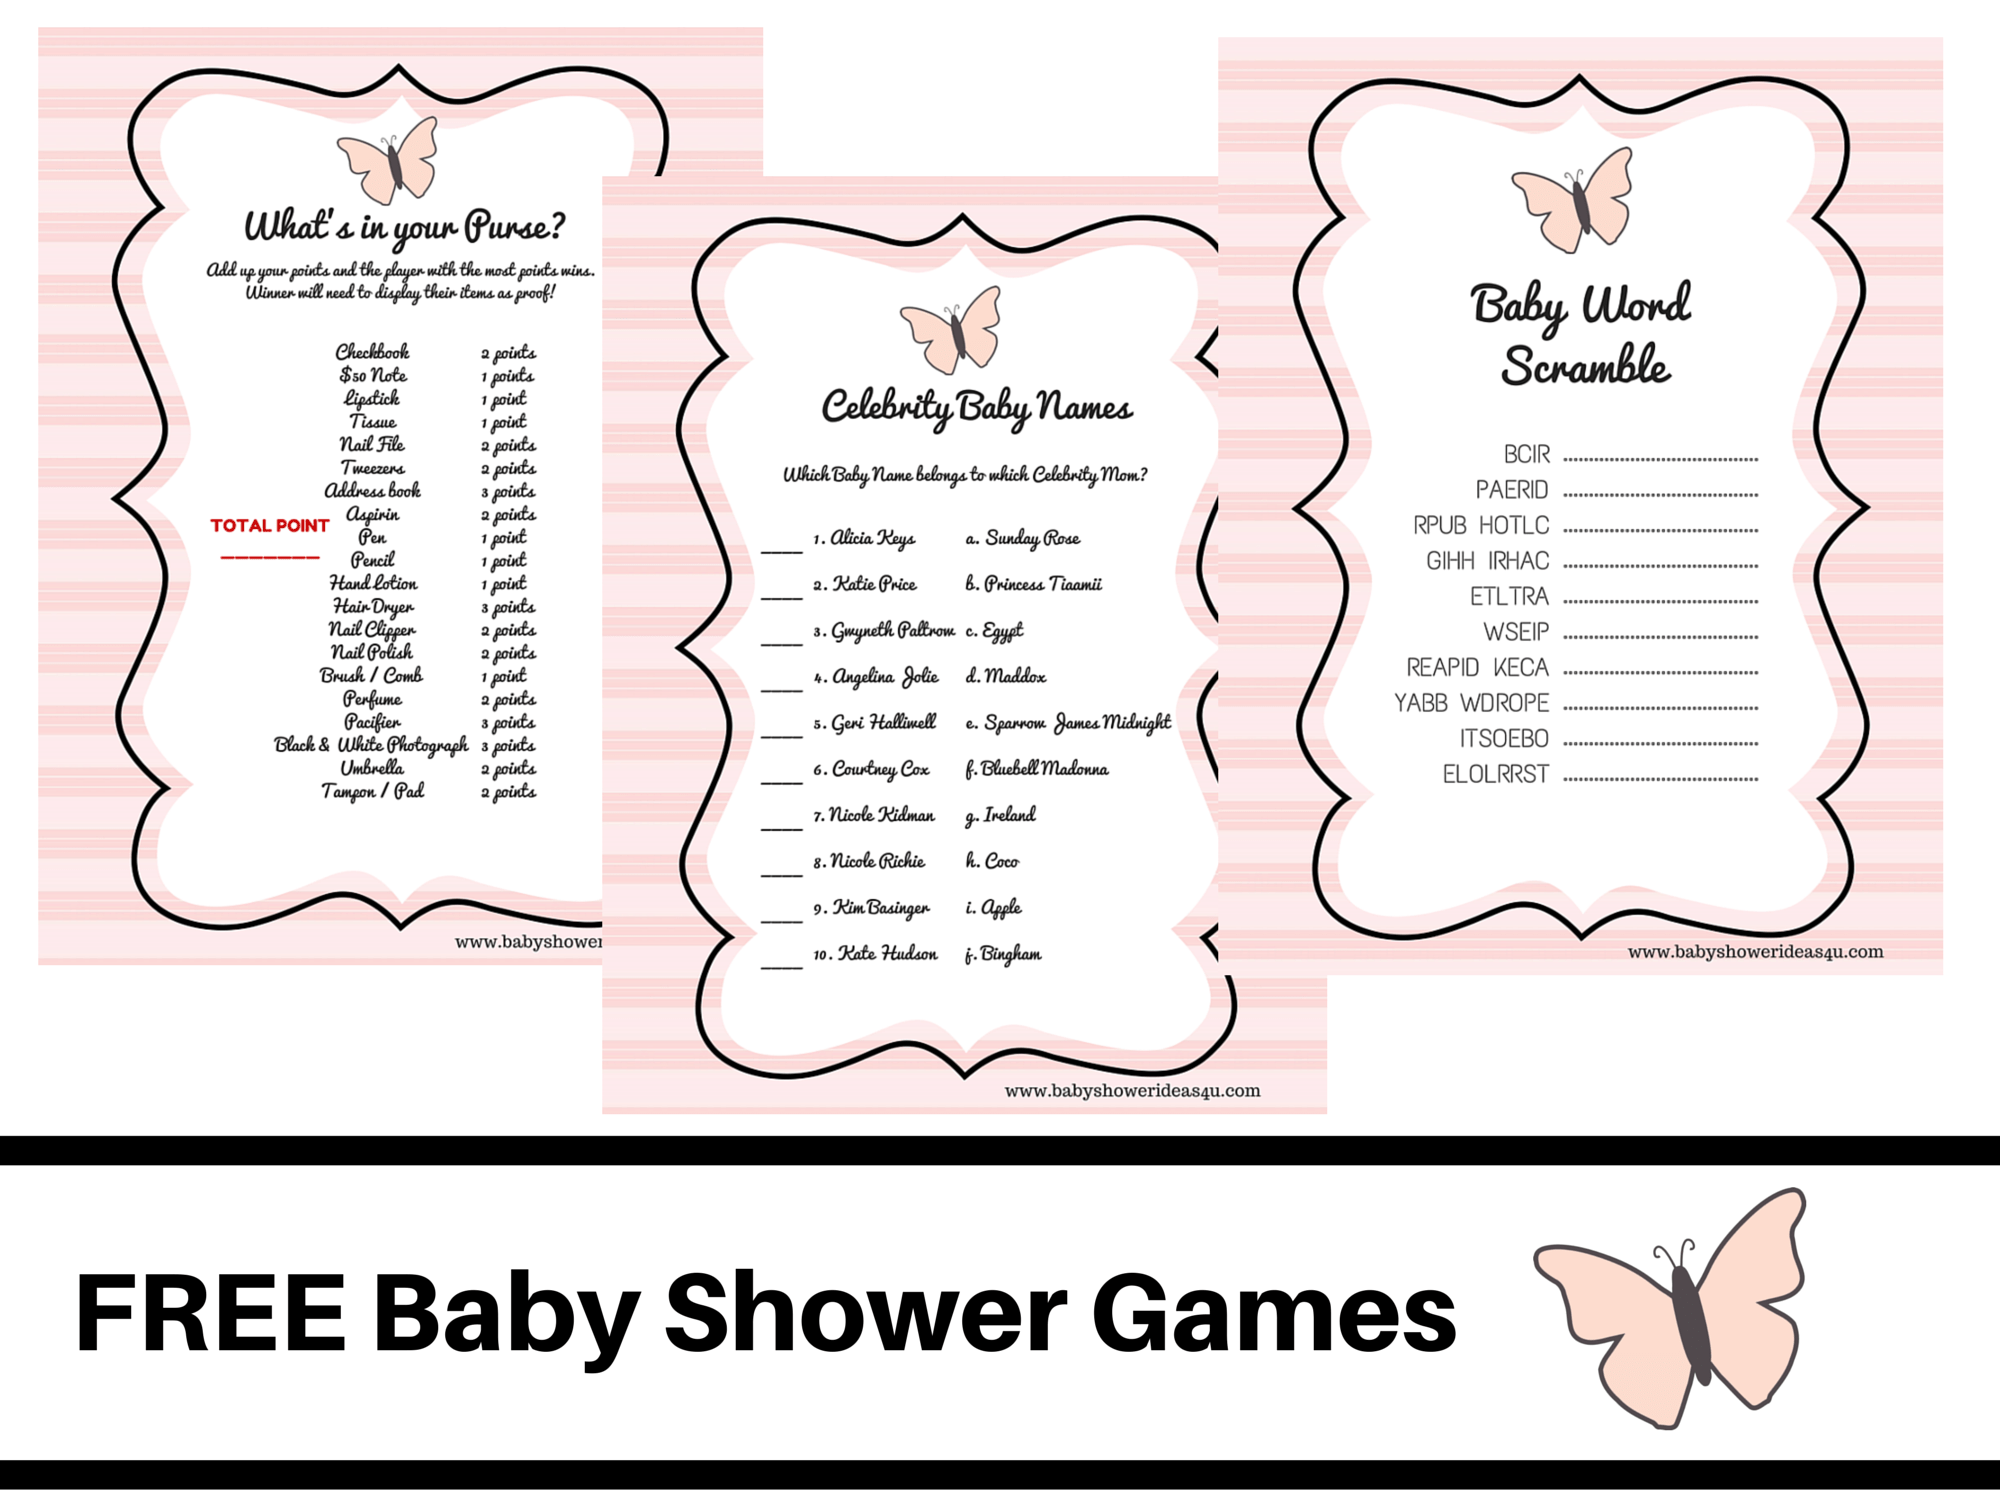 Butterfly Theme Baby Shower Free Printable Baby Shower Games Baby Word Scramble Baby Celebrity